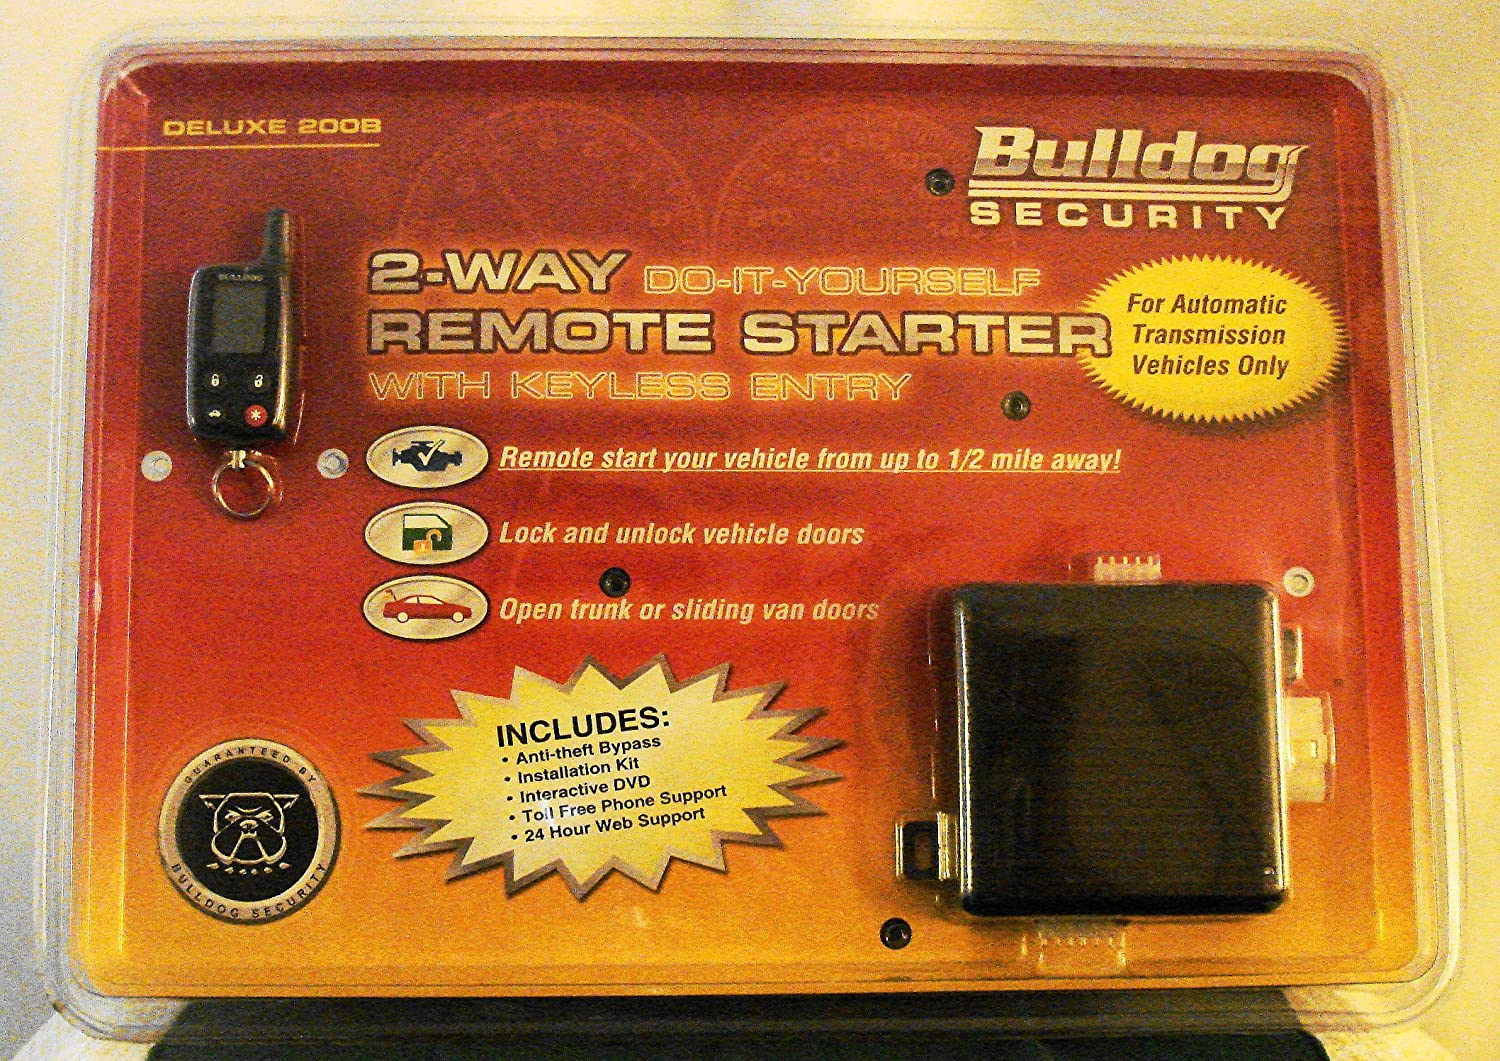 Great Bulldogsecurity.com Wiring Tall Two Humbuckers 5 Way Switch Square 3 Coil Pickup Bulldog Alarm System Youthful How To Install A Remote Car Starter Video BrightTele 3 Way Switch Amazon.com: Bulldog Security 2 Way Do It Yourself Remote Vehicle ..